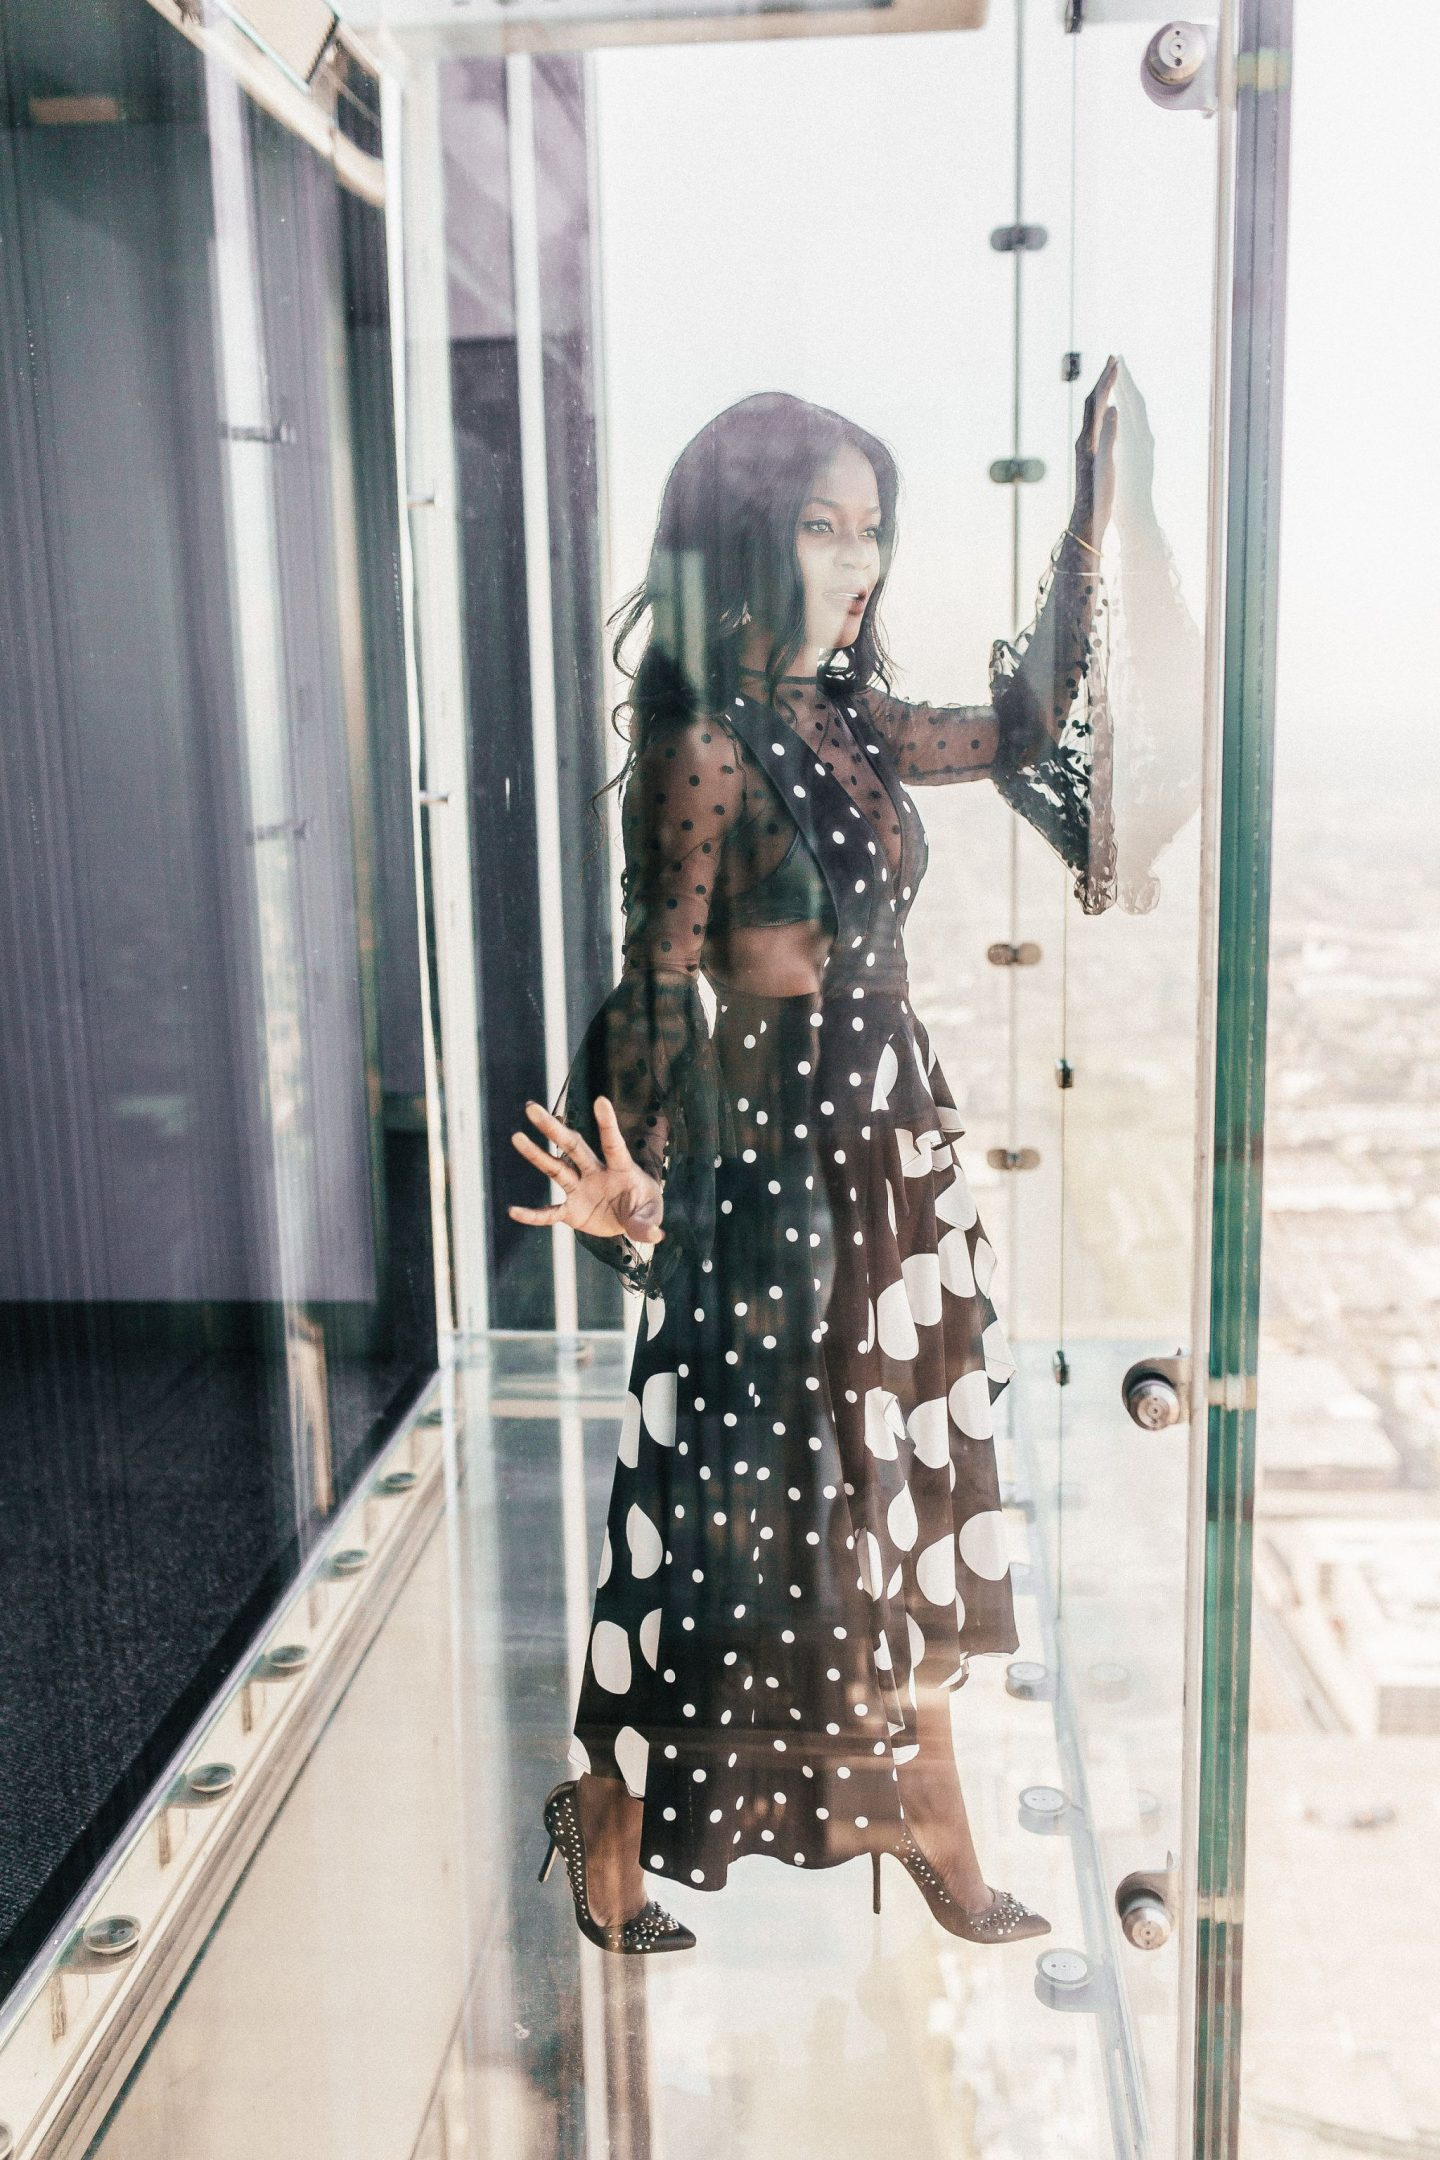 Jennifer Ibe of Cranberry Tantrums at Chicago Skydeck